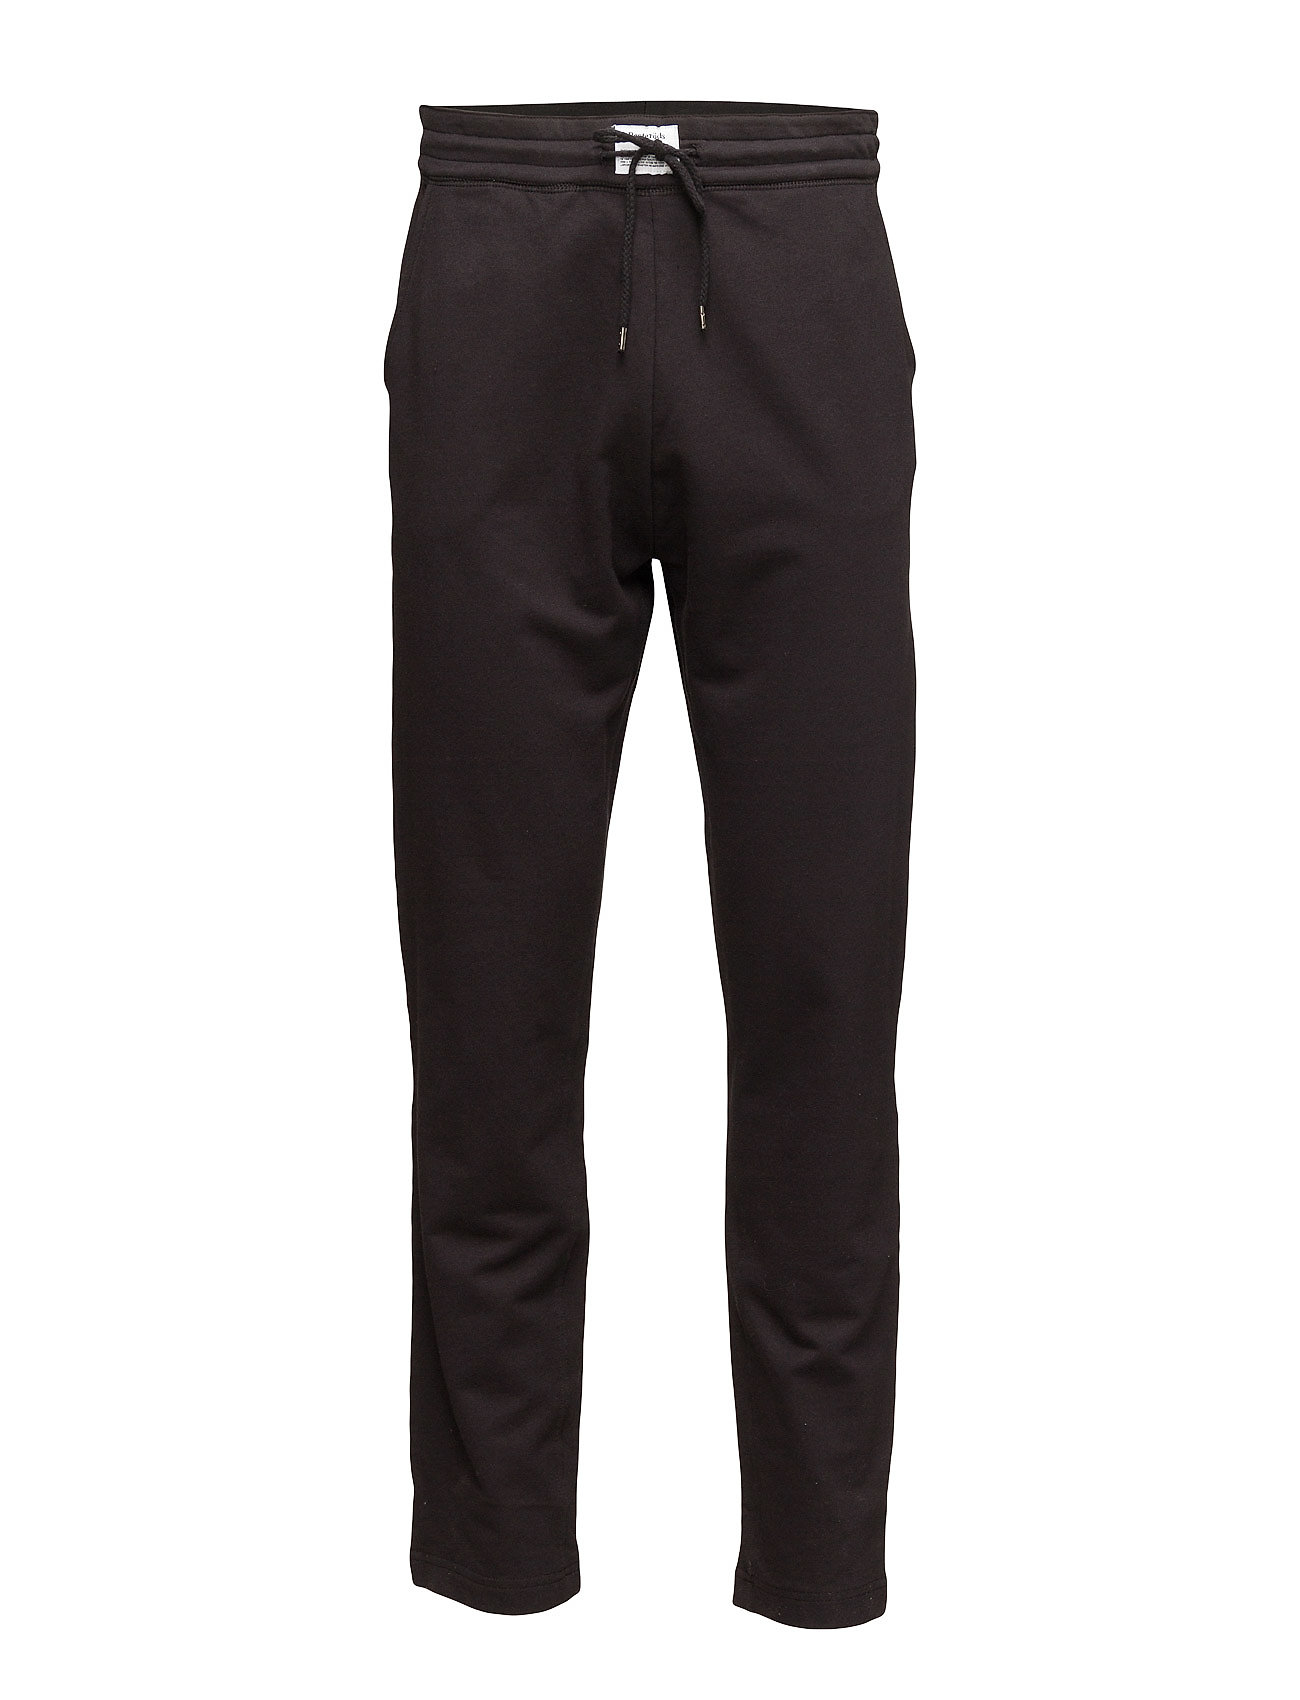 Resteröds Original Sweat Pant - SORT